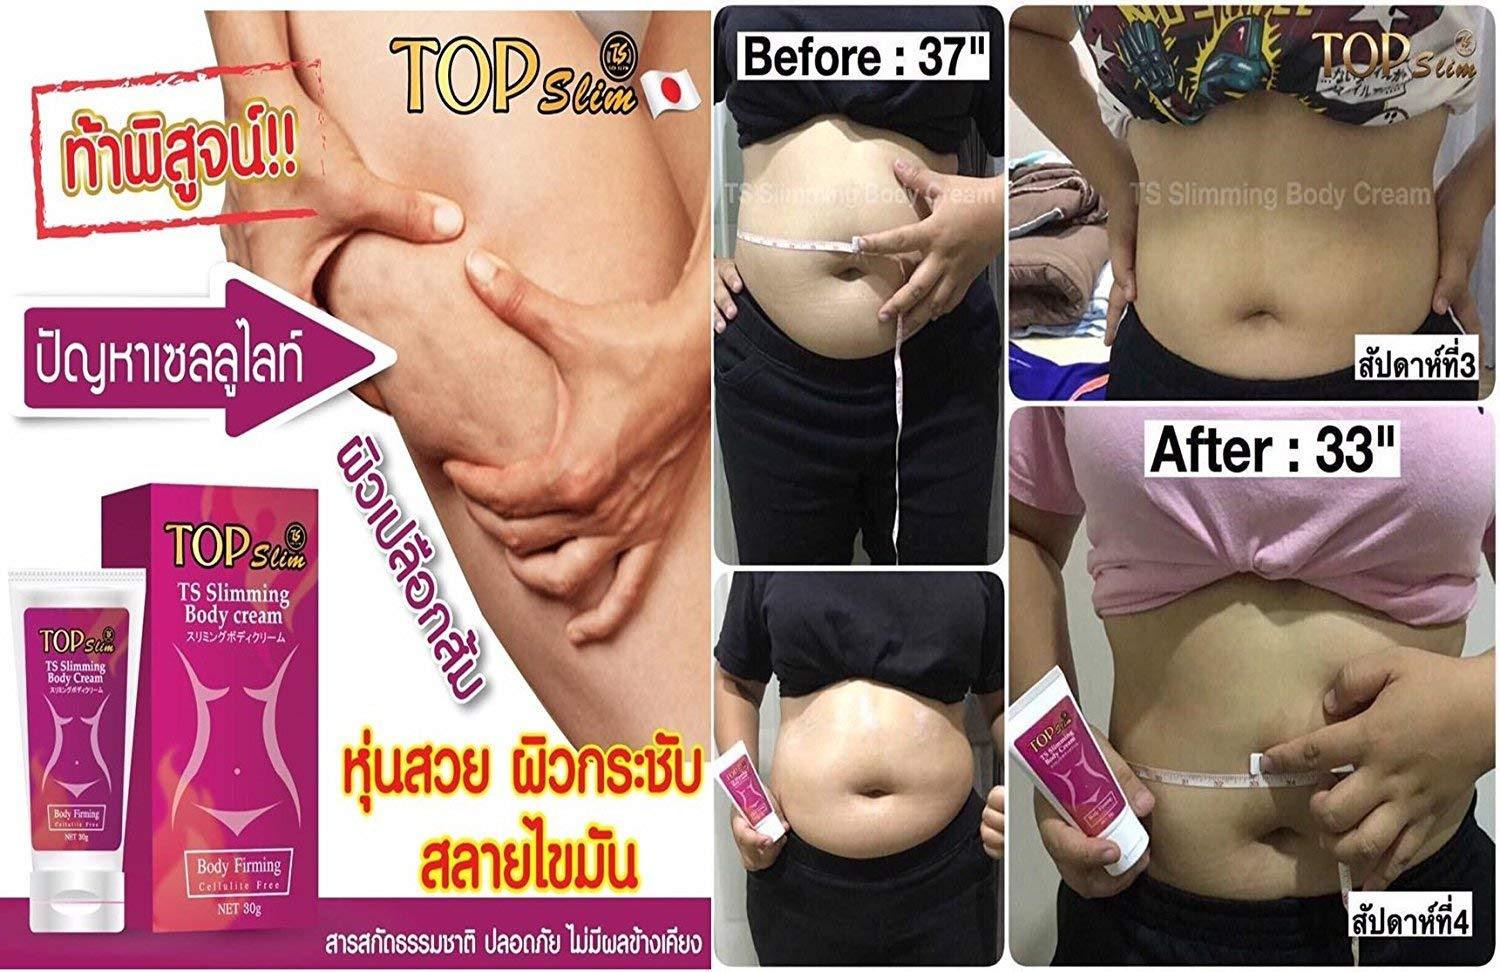 1Box.30Gram.++Cream slimming wraps for weight loss,Slimming System, Top Slim Slimming Body Cream Japan Fat burning Reduce cellulite, Cellulite Weight Loss Body Slimming Cream Fat Burnin